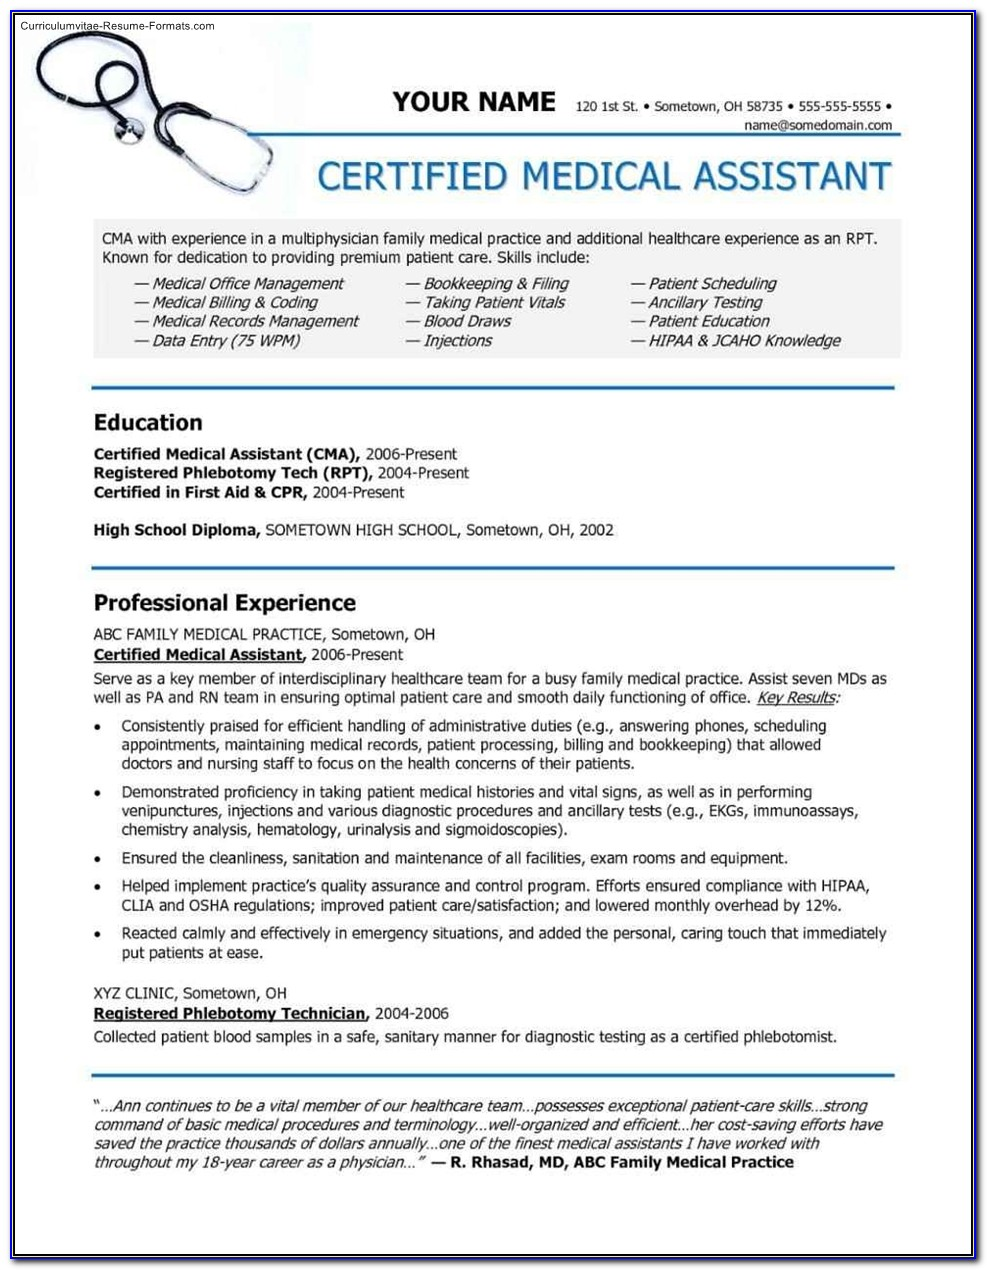 Medical Assistant Resume Templates Free